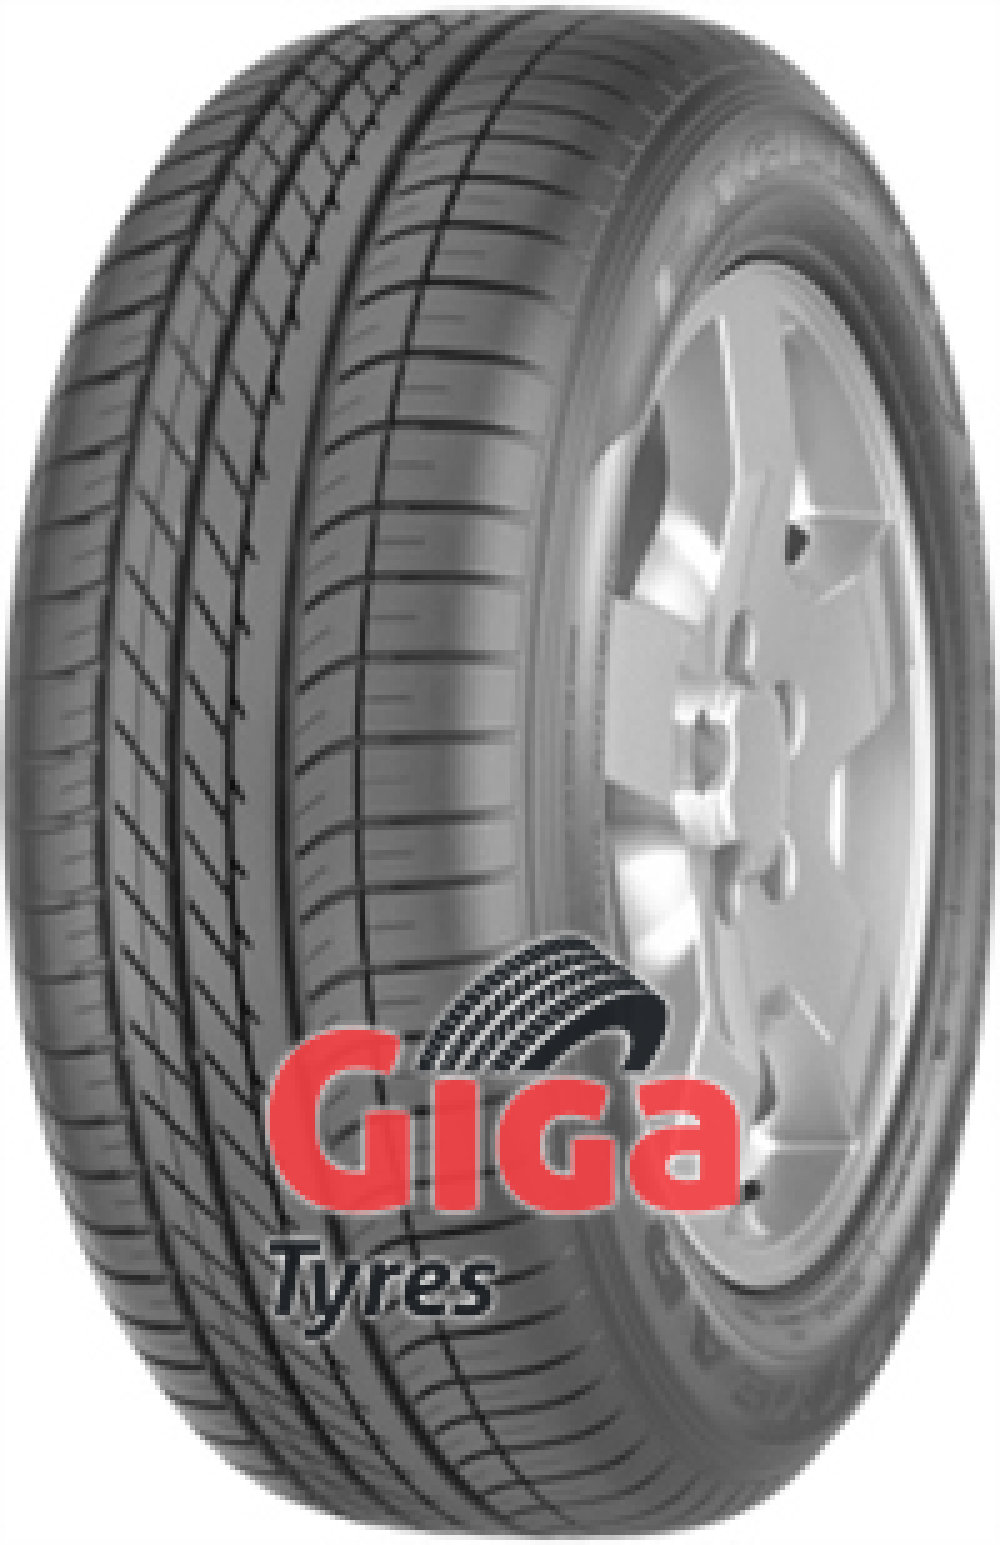 Goodyear Eagle F1 Asymmetric AT ( 255/55 R19 111W XL J, LR, SUV, with rim protection (MFS) )